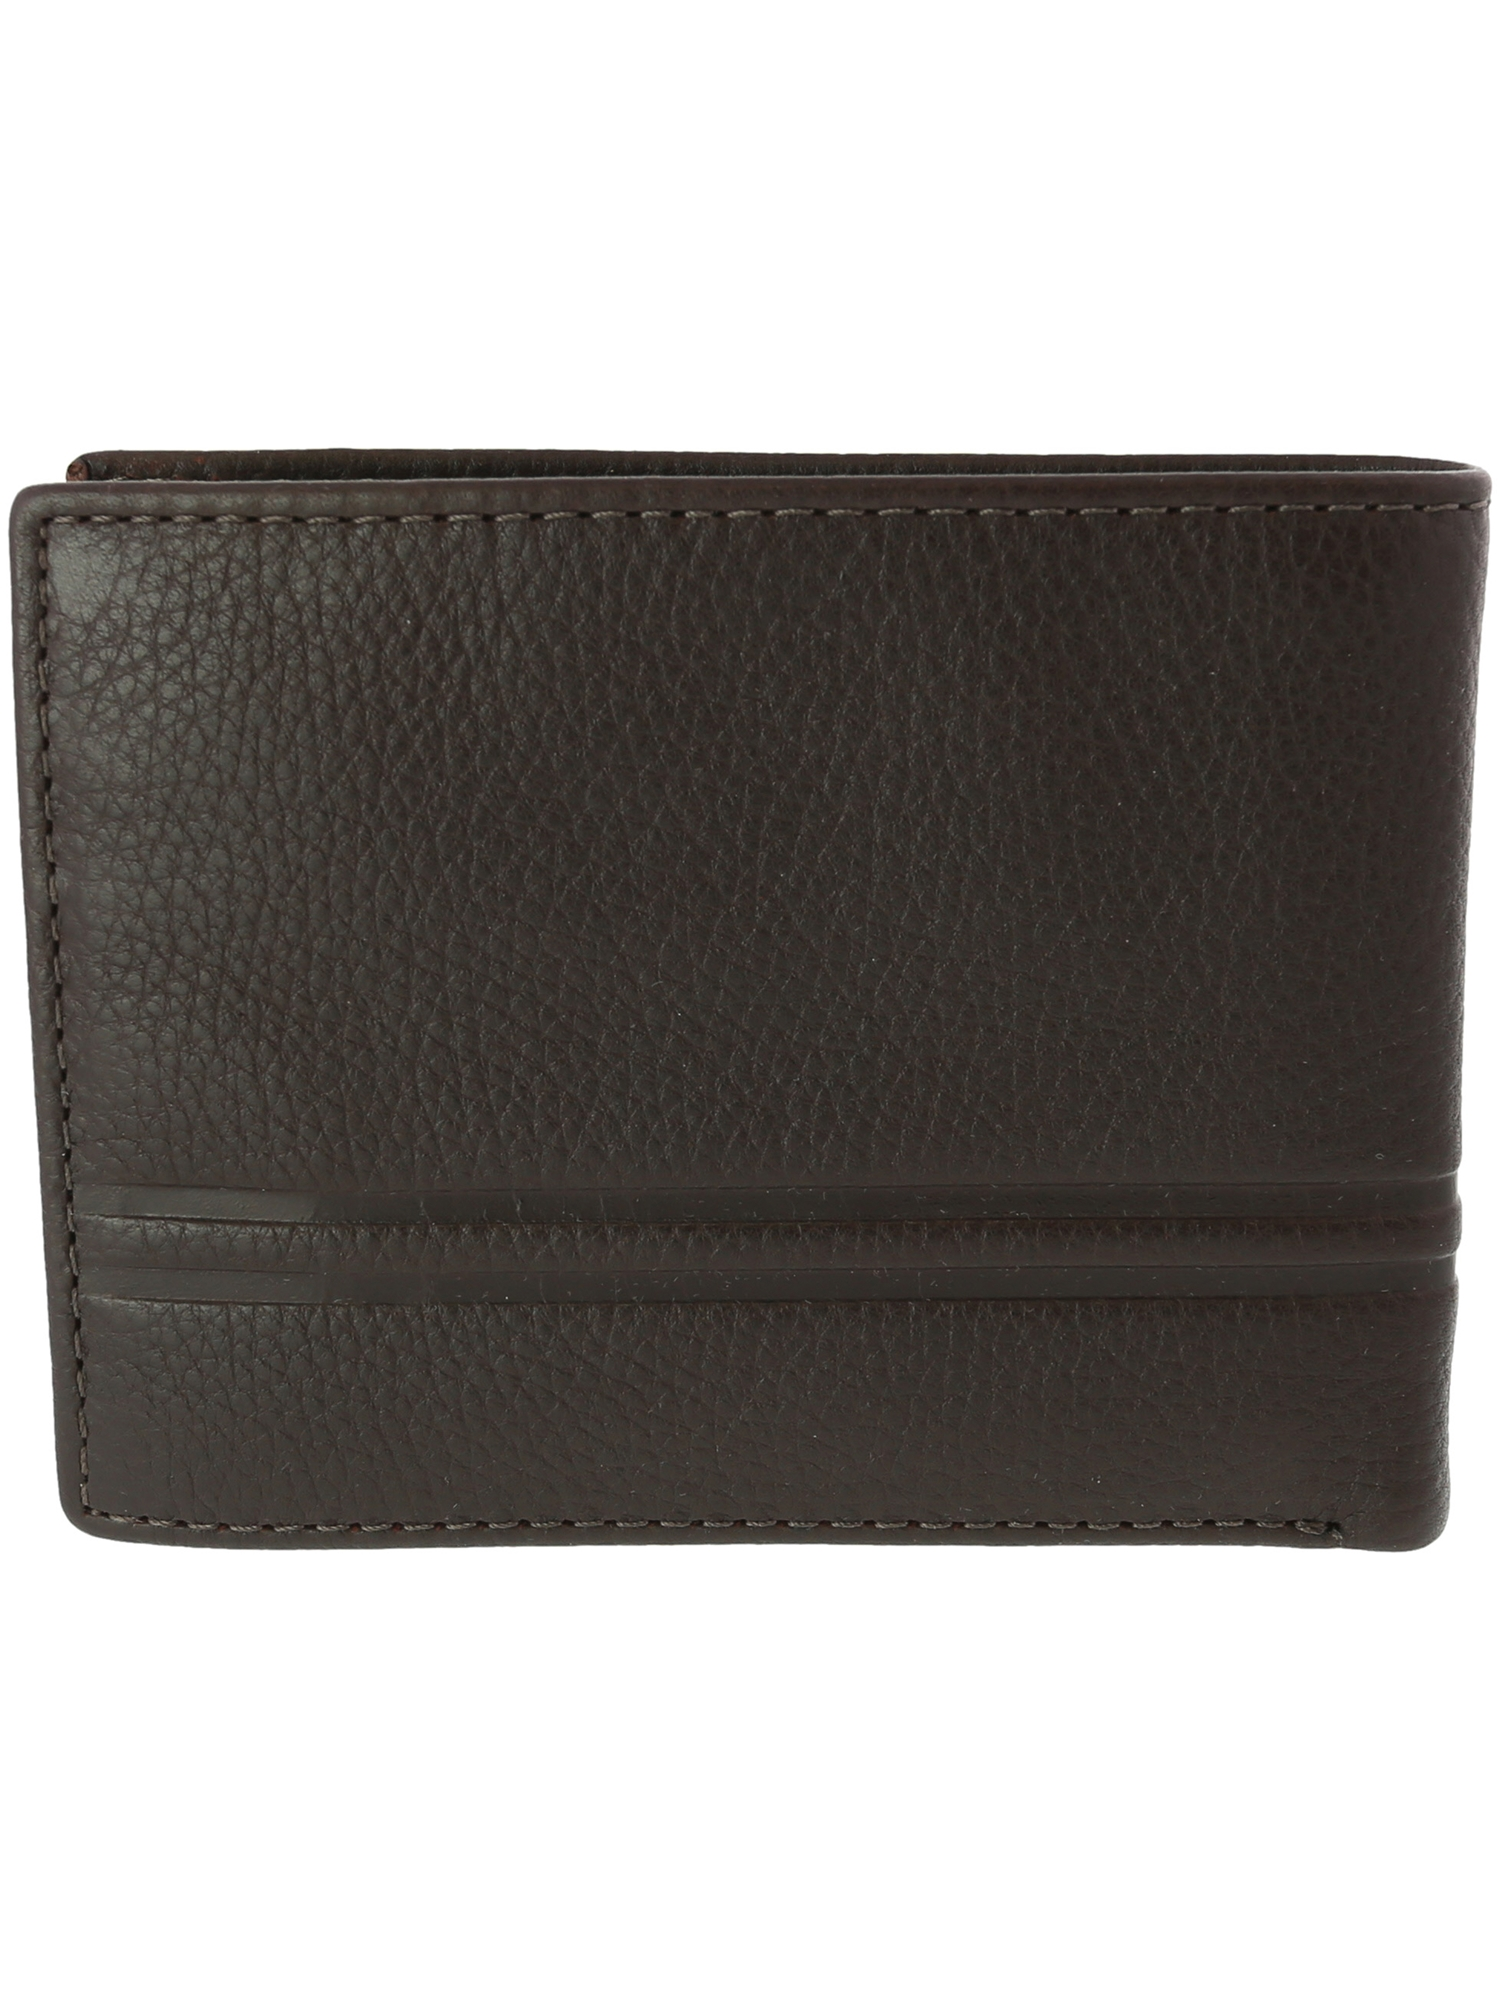 32297abde879 Fossil Men's Wilder Flip Id Bifold Leather Wallet - Black